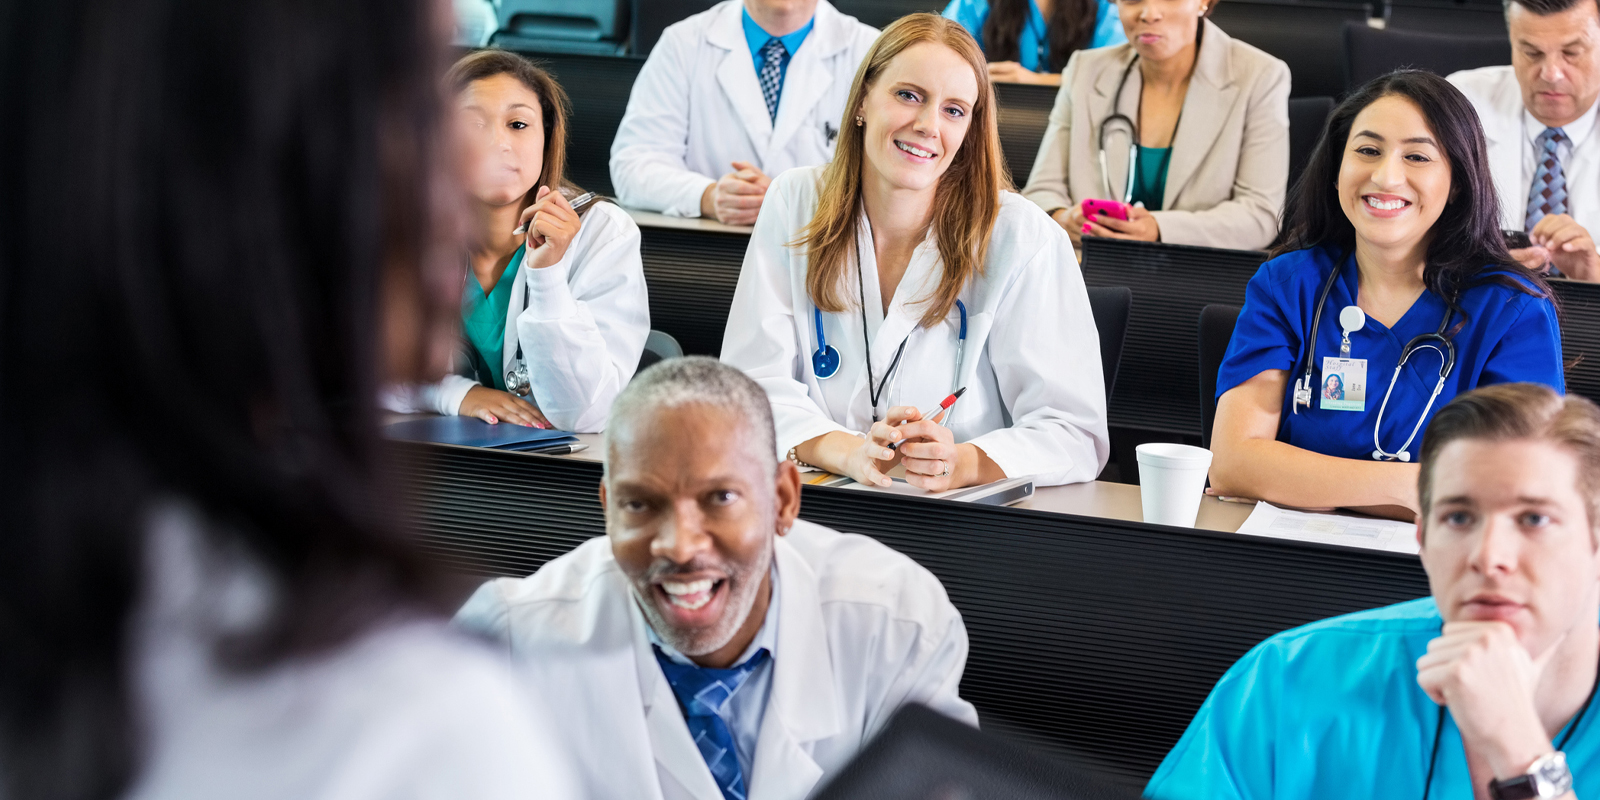 Engage Users for Effective EHR Training